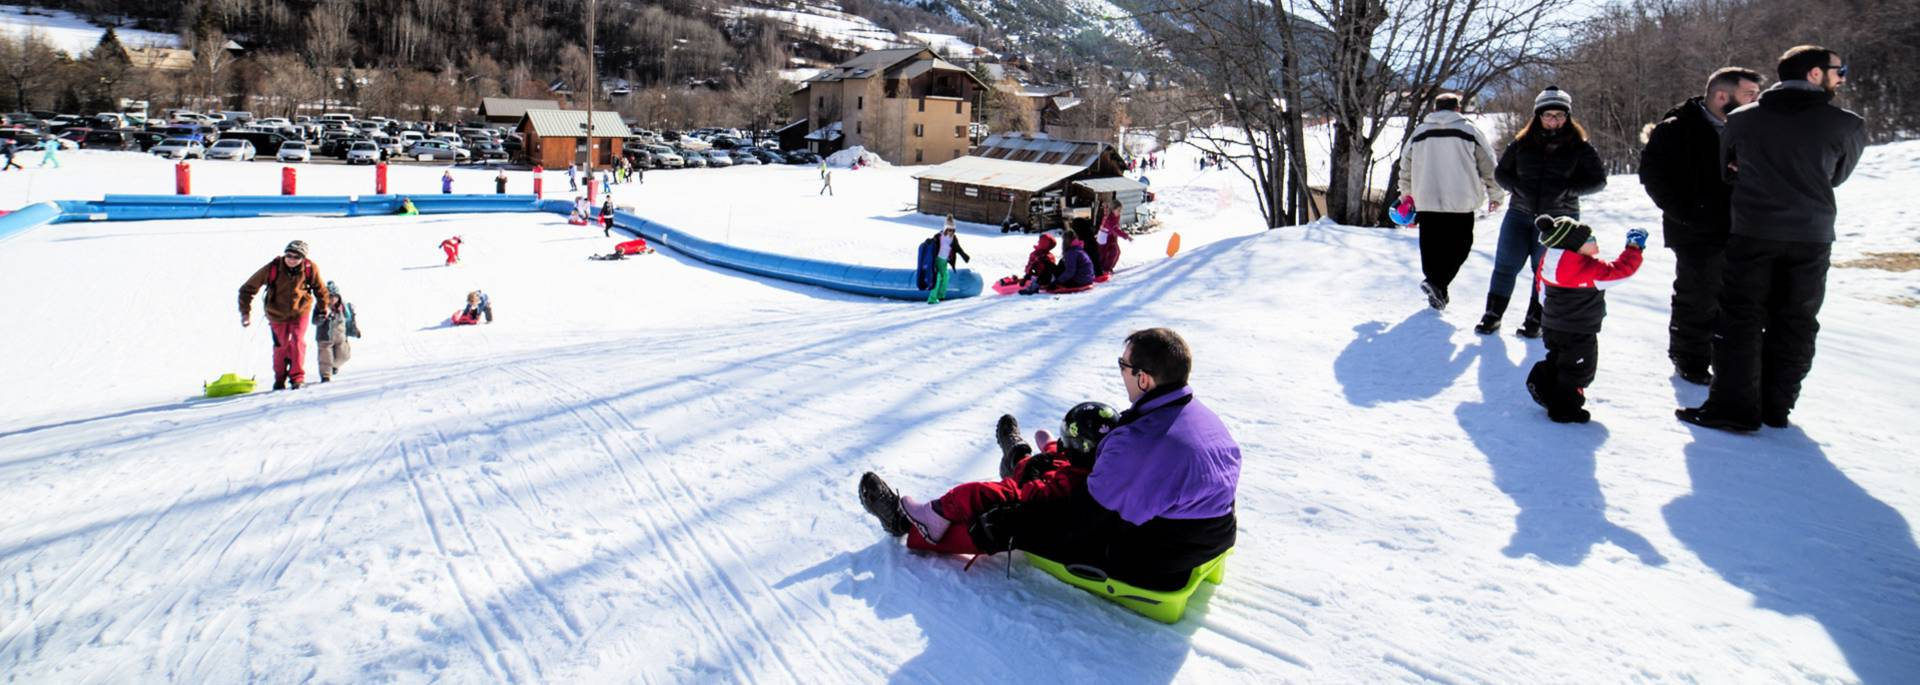 Sledging in Pelvoux